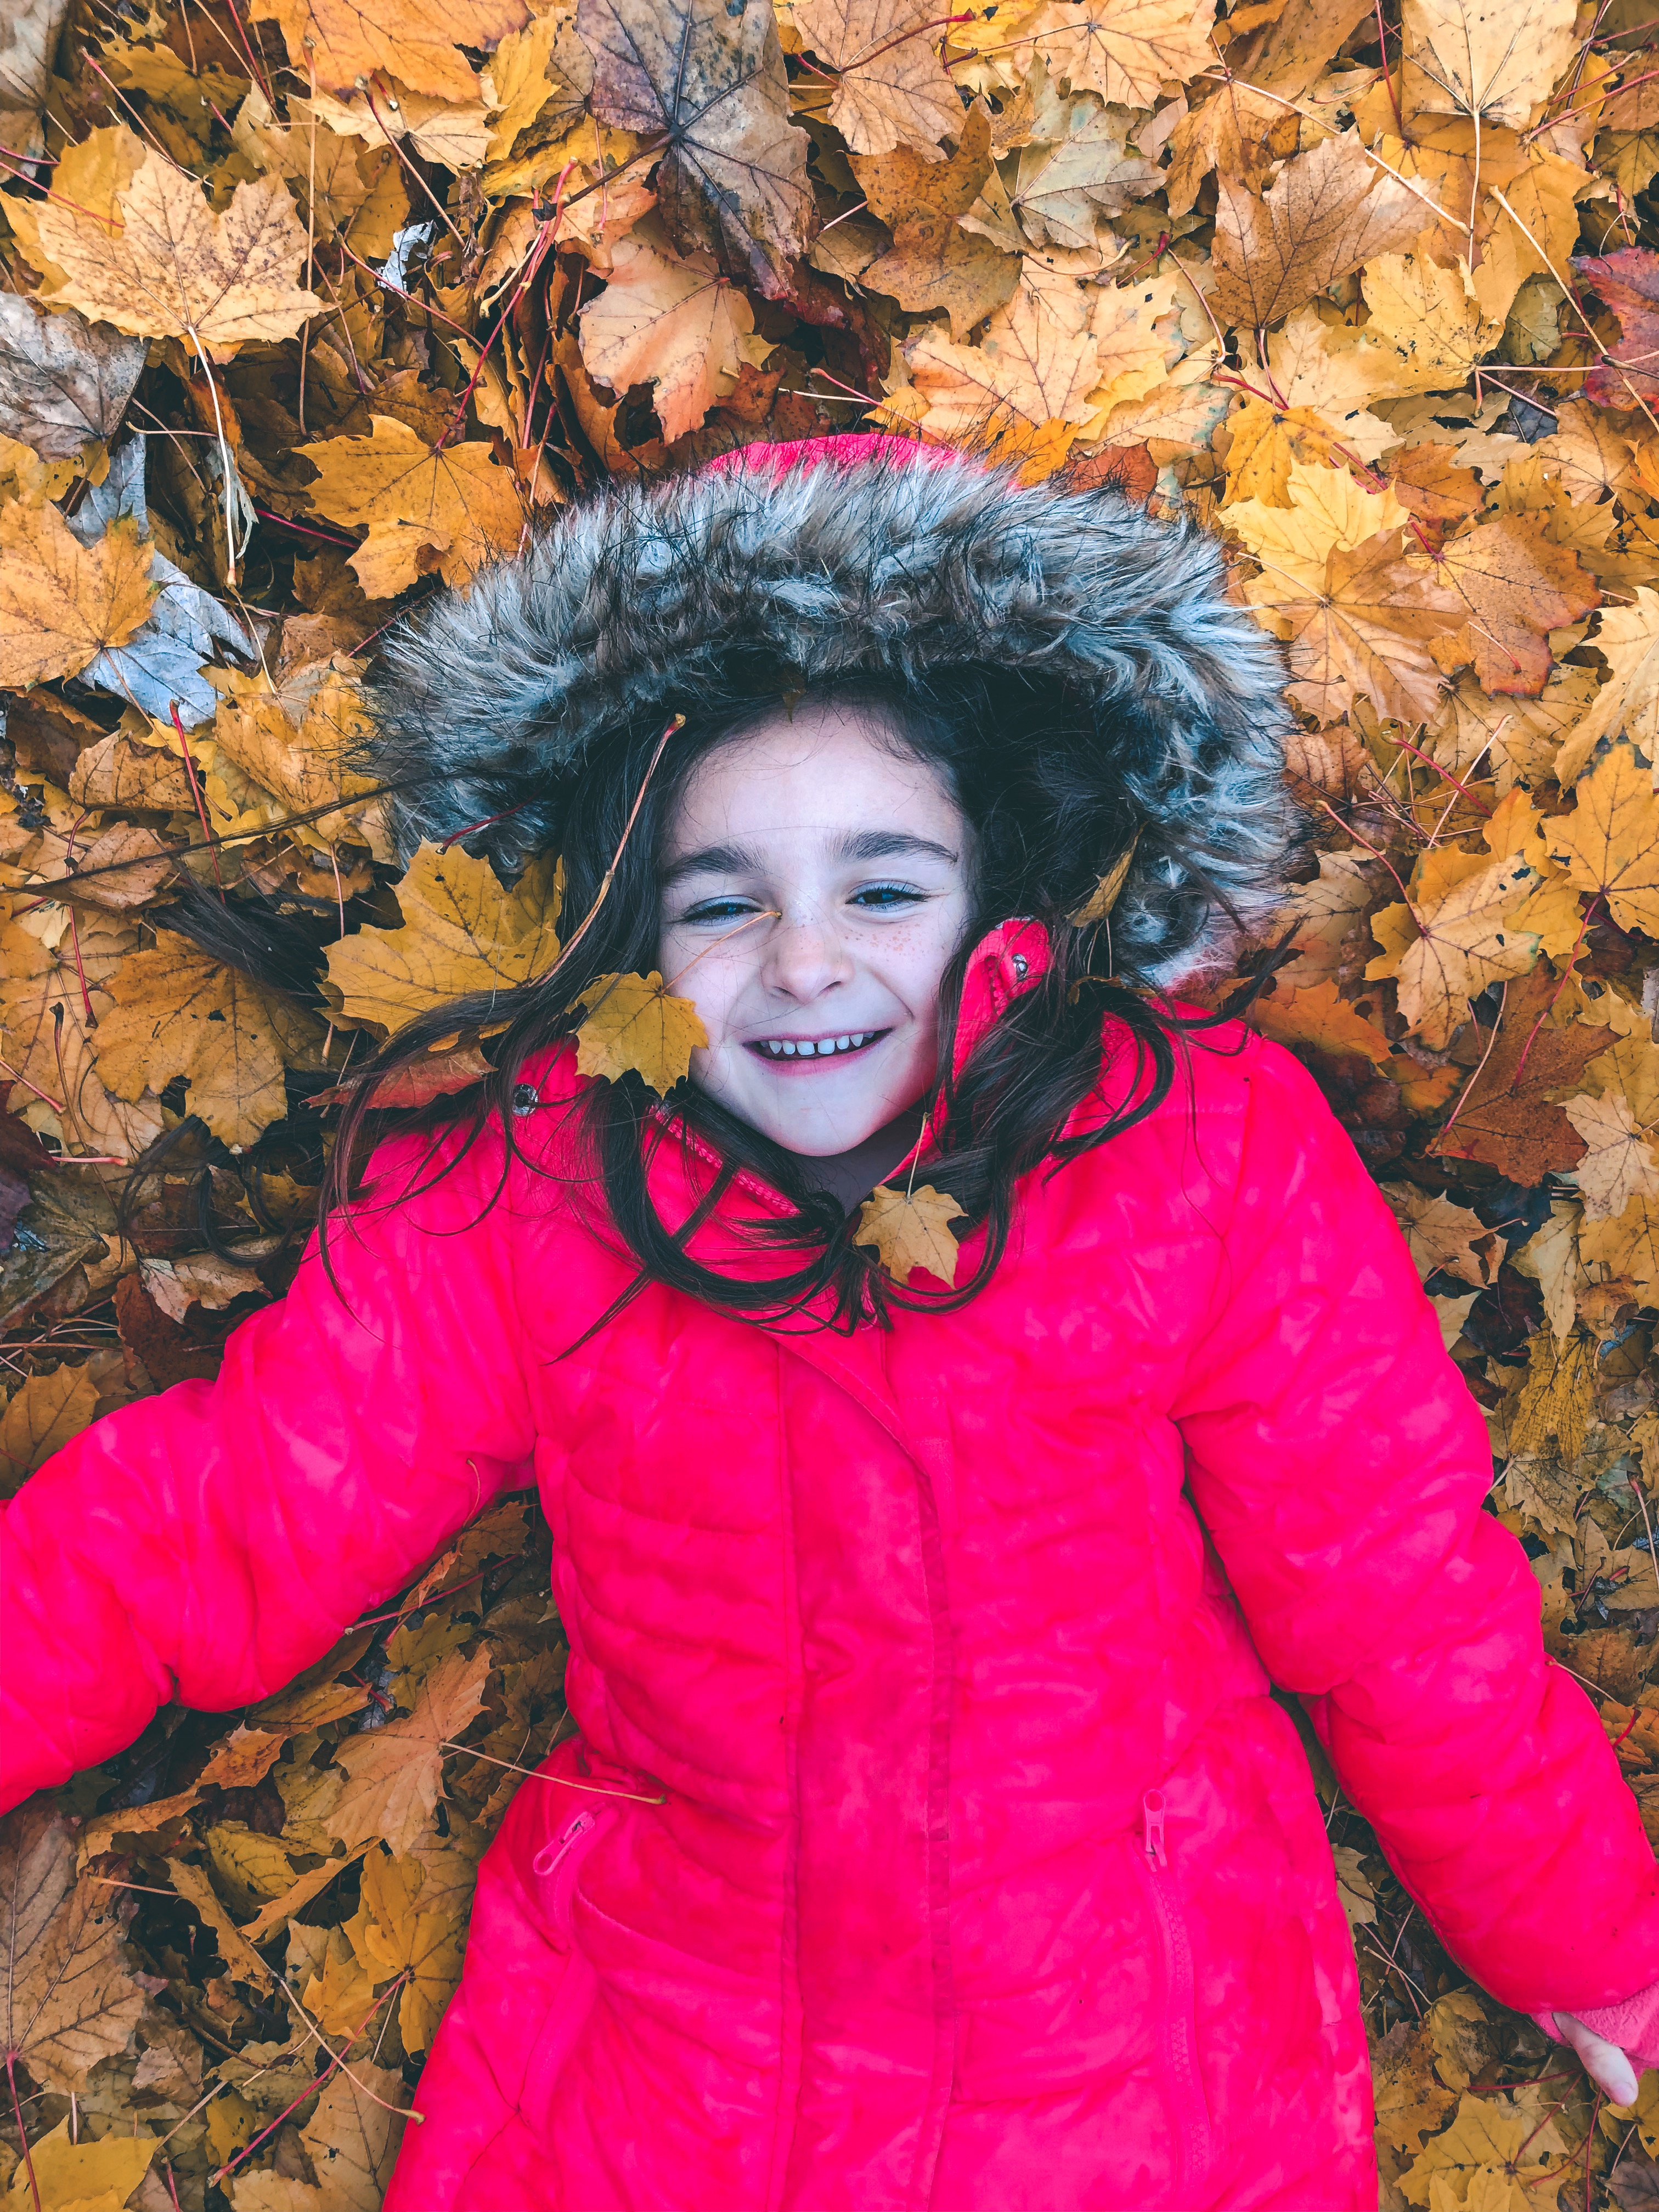 playing-in-fall-leaves